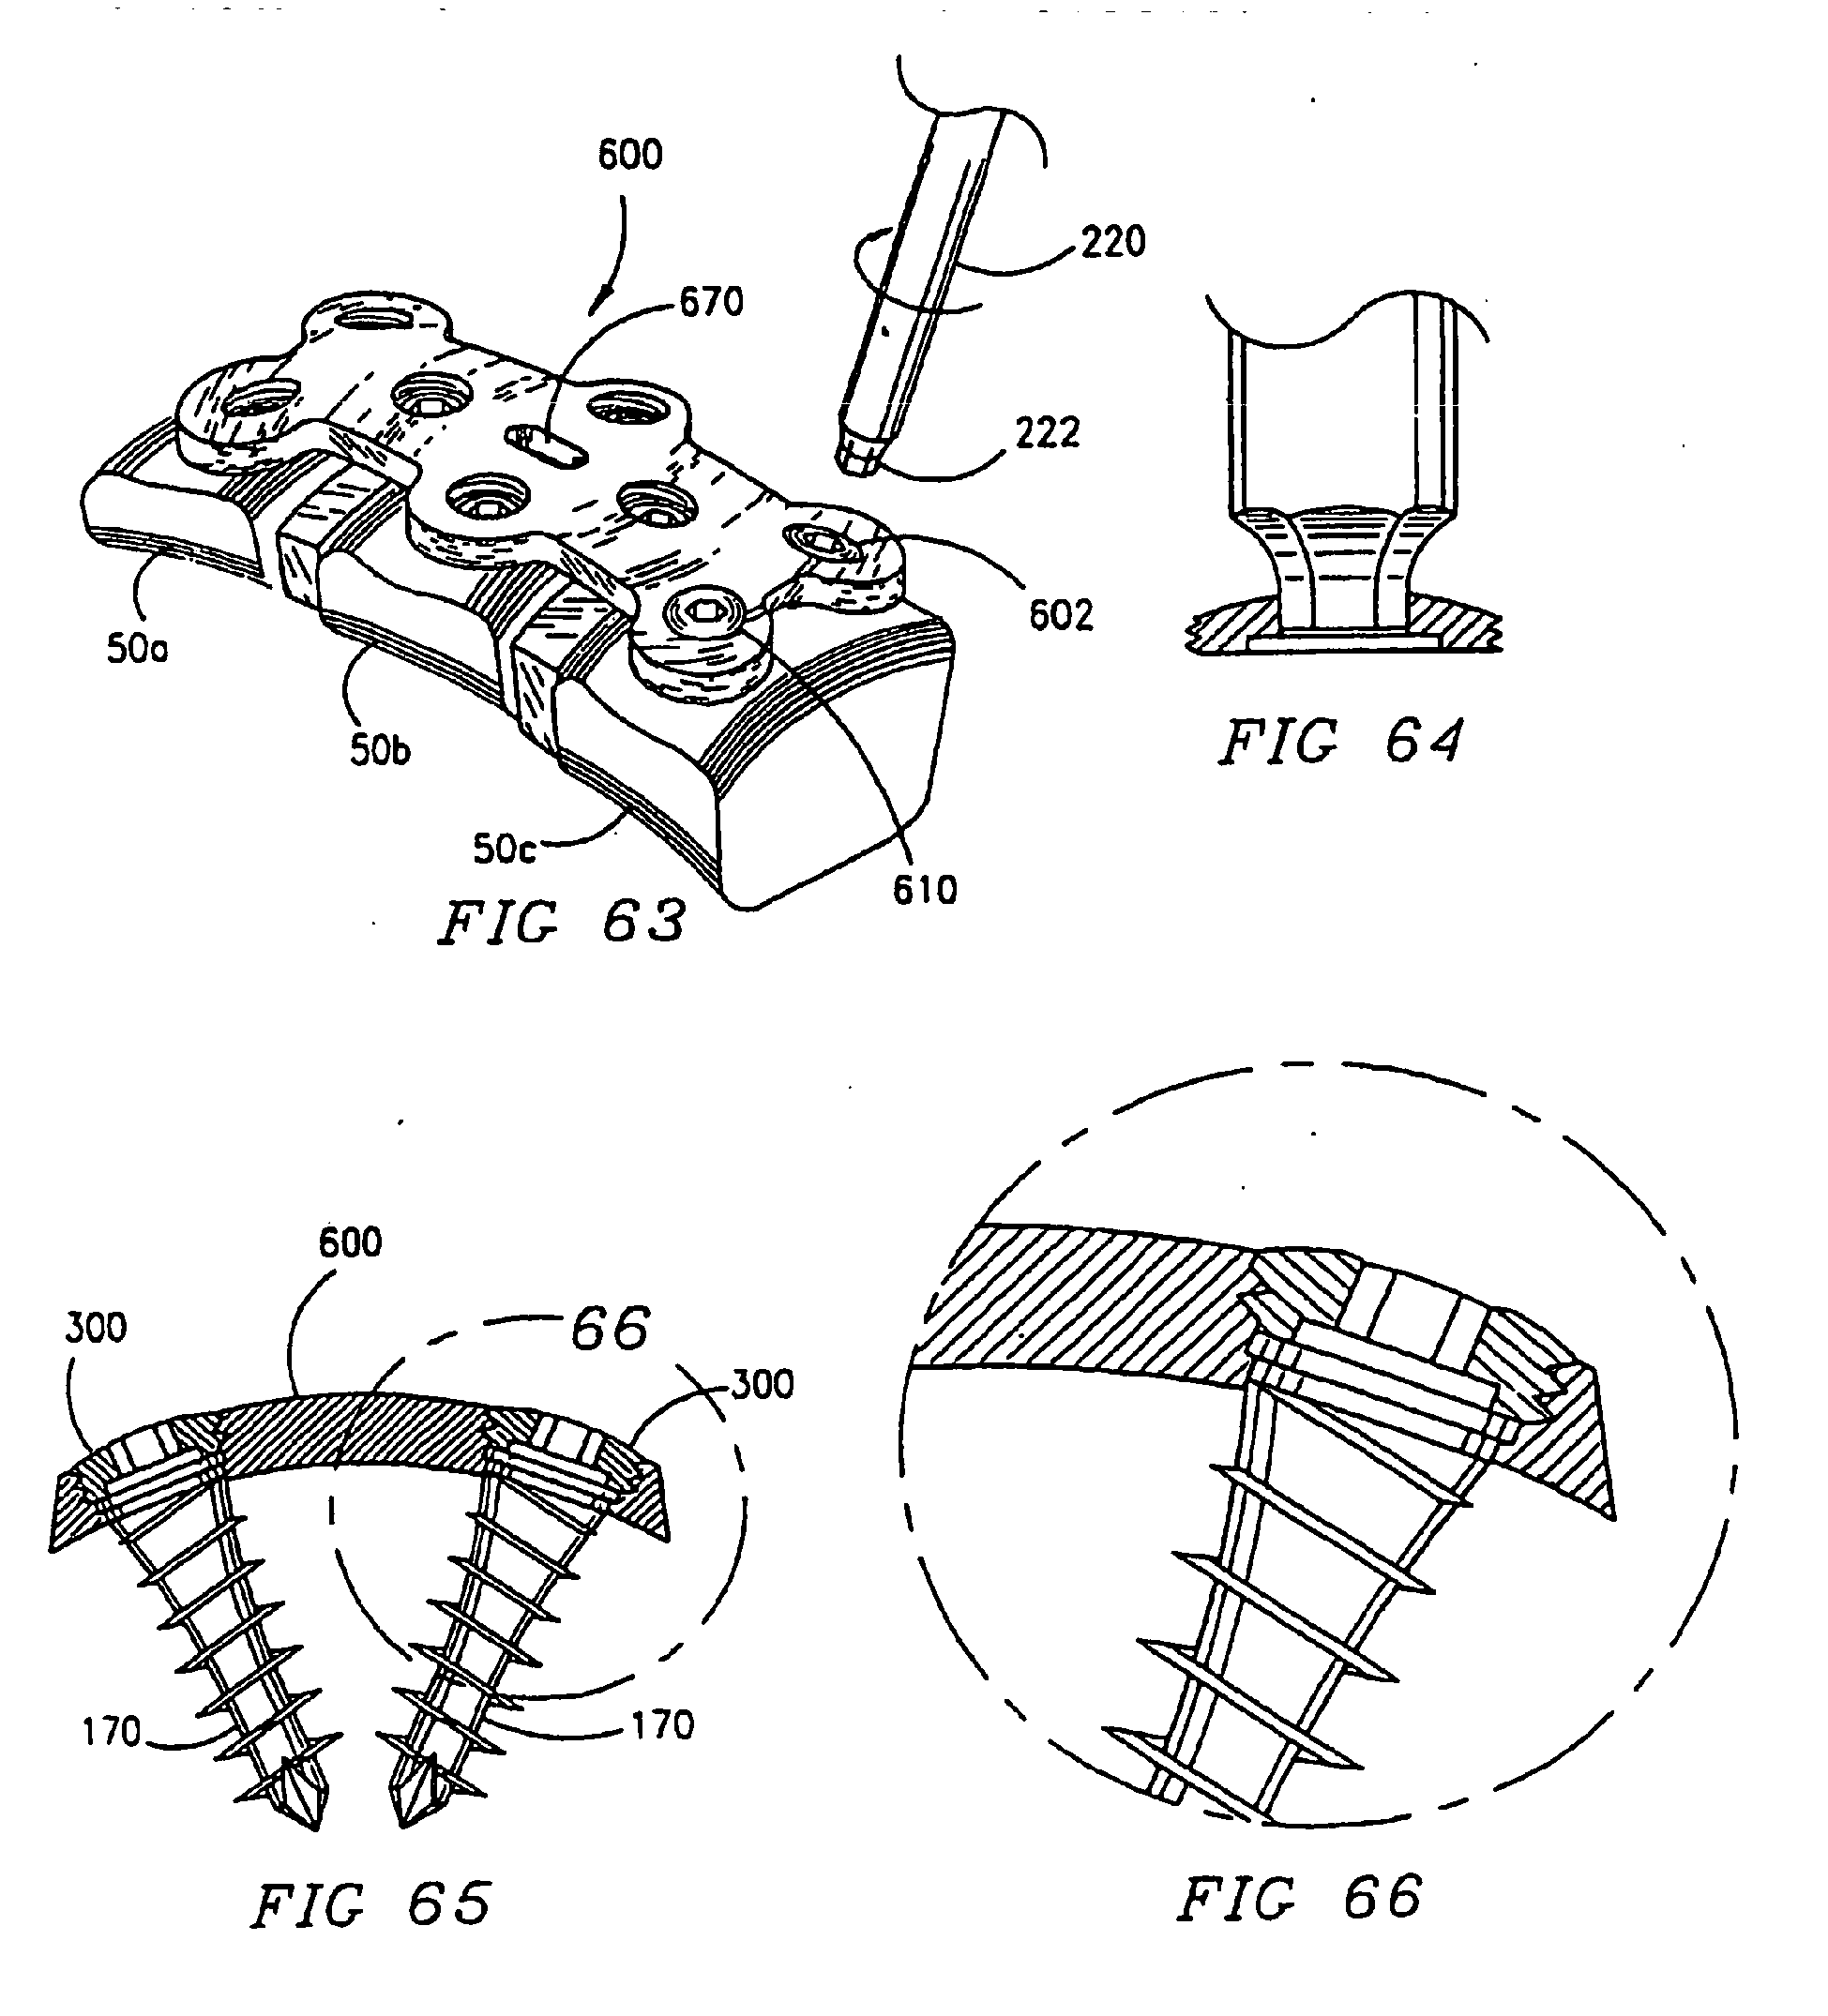 patent ep1393687b1 single lock anterior cervical plate 110 Punch Down Block Wiring patent drawing